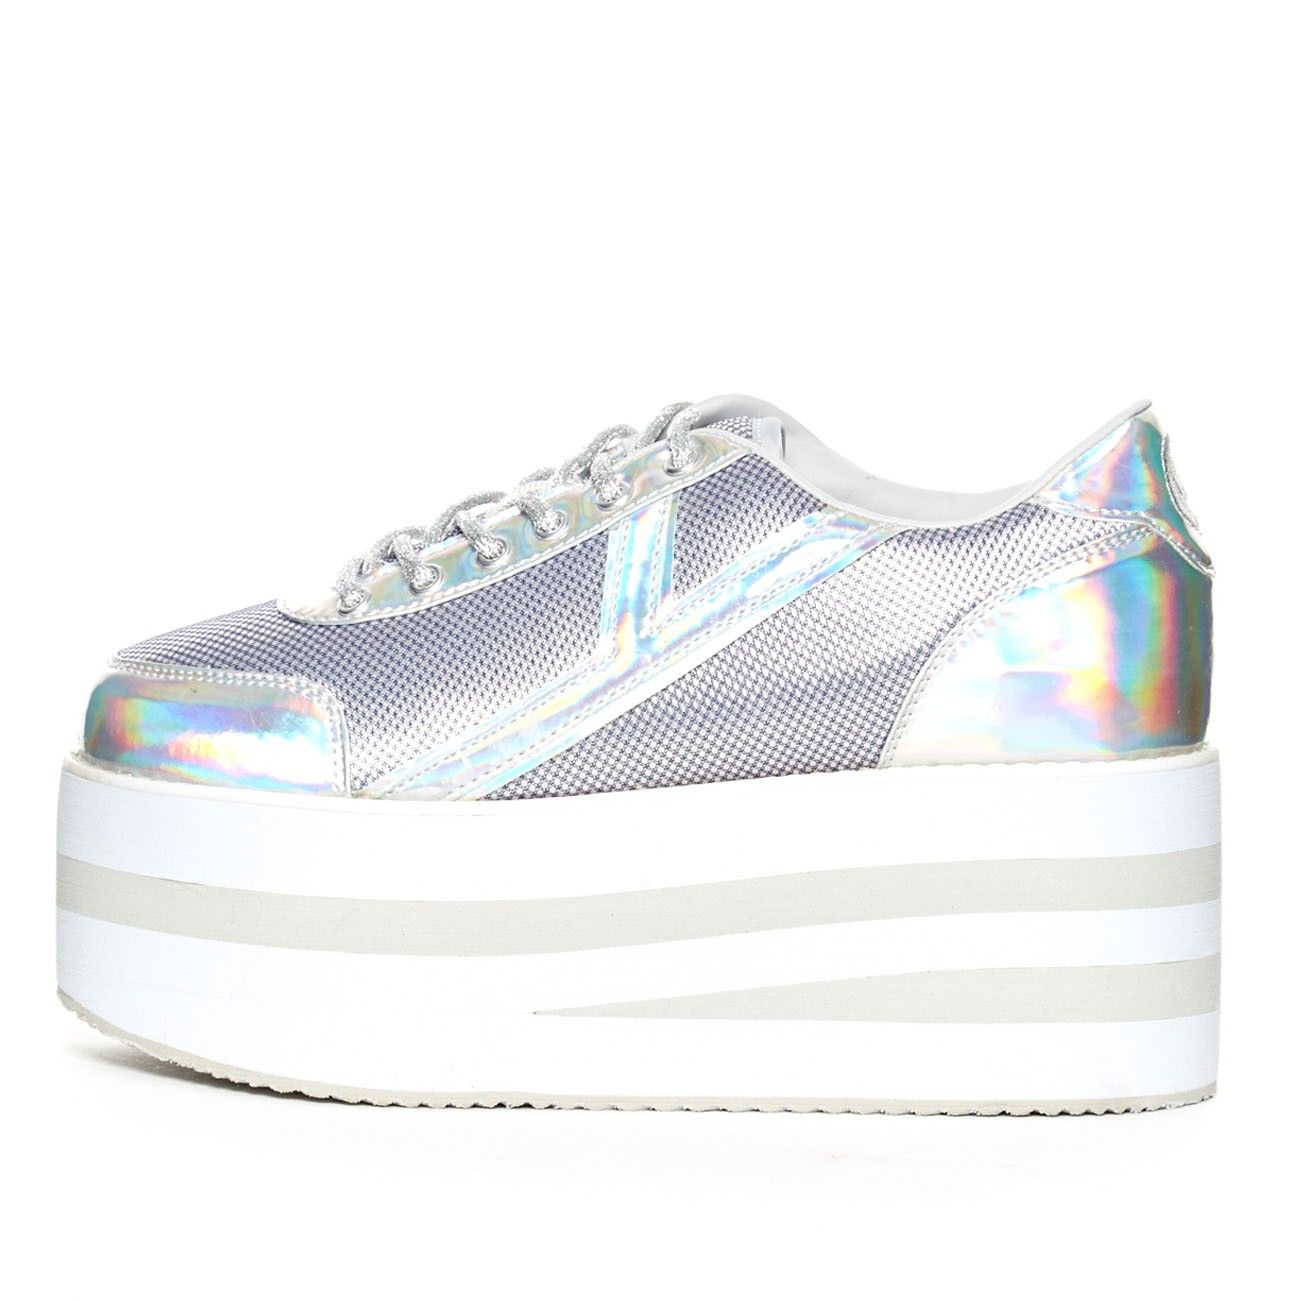 Sparkling Jellies Rainbow Sea Creatures Women's Casual Sneakers Shoes Canvas Sports New Vegan